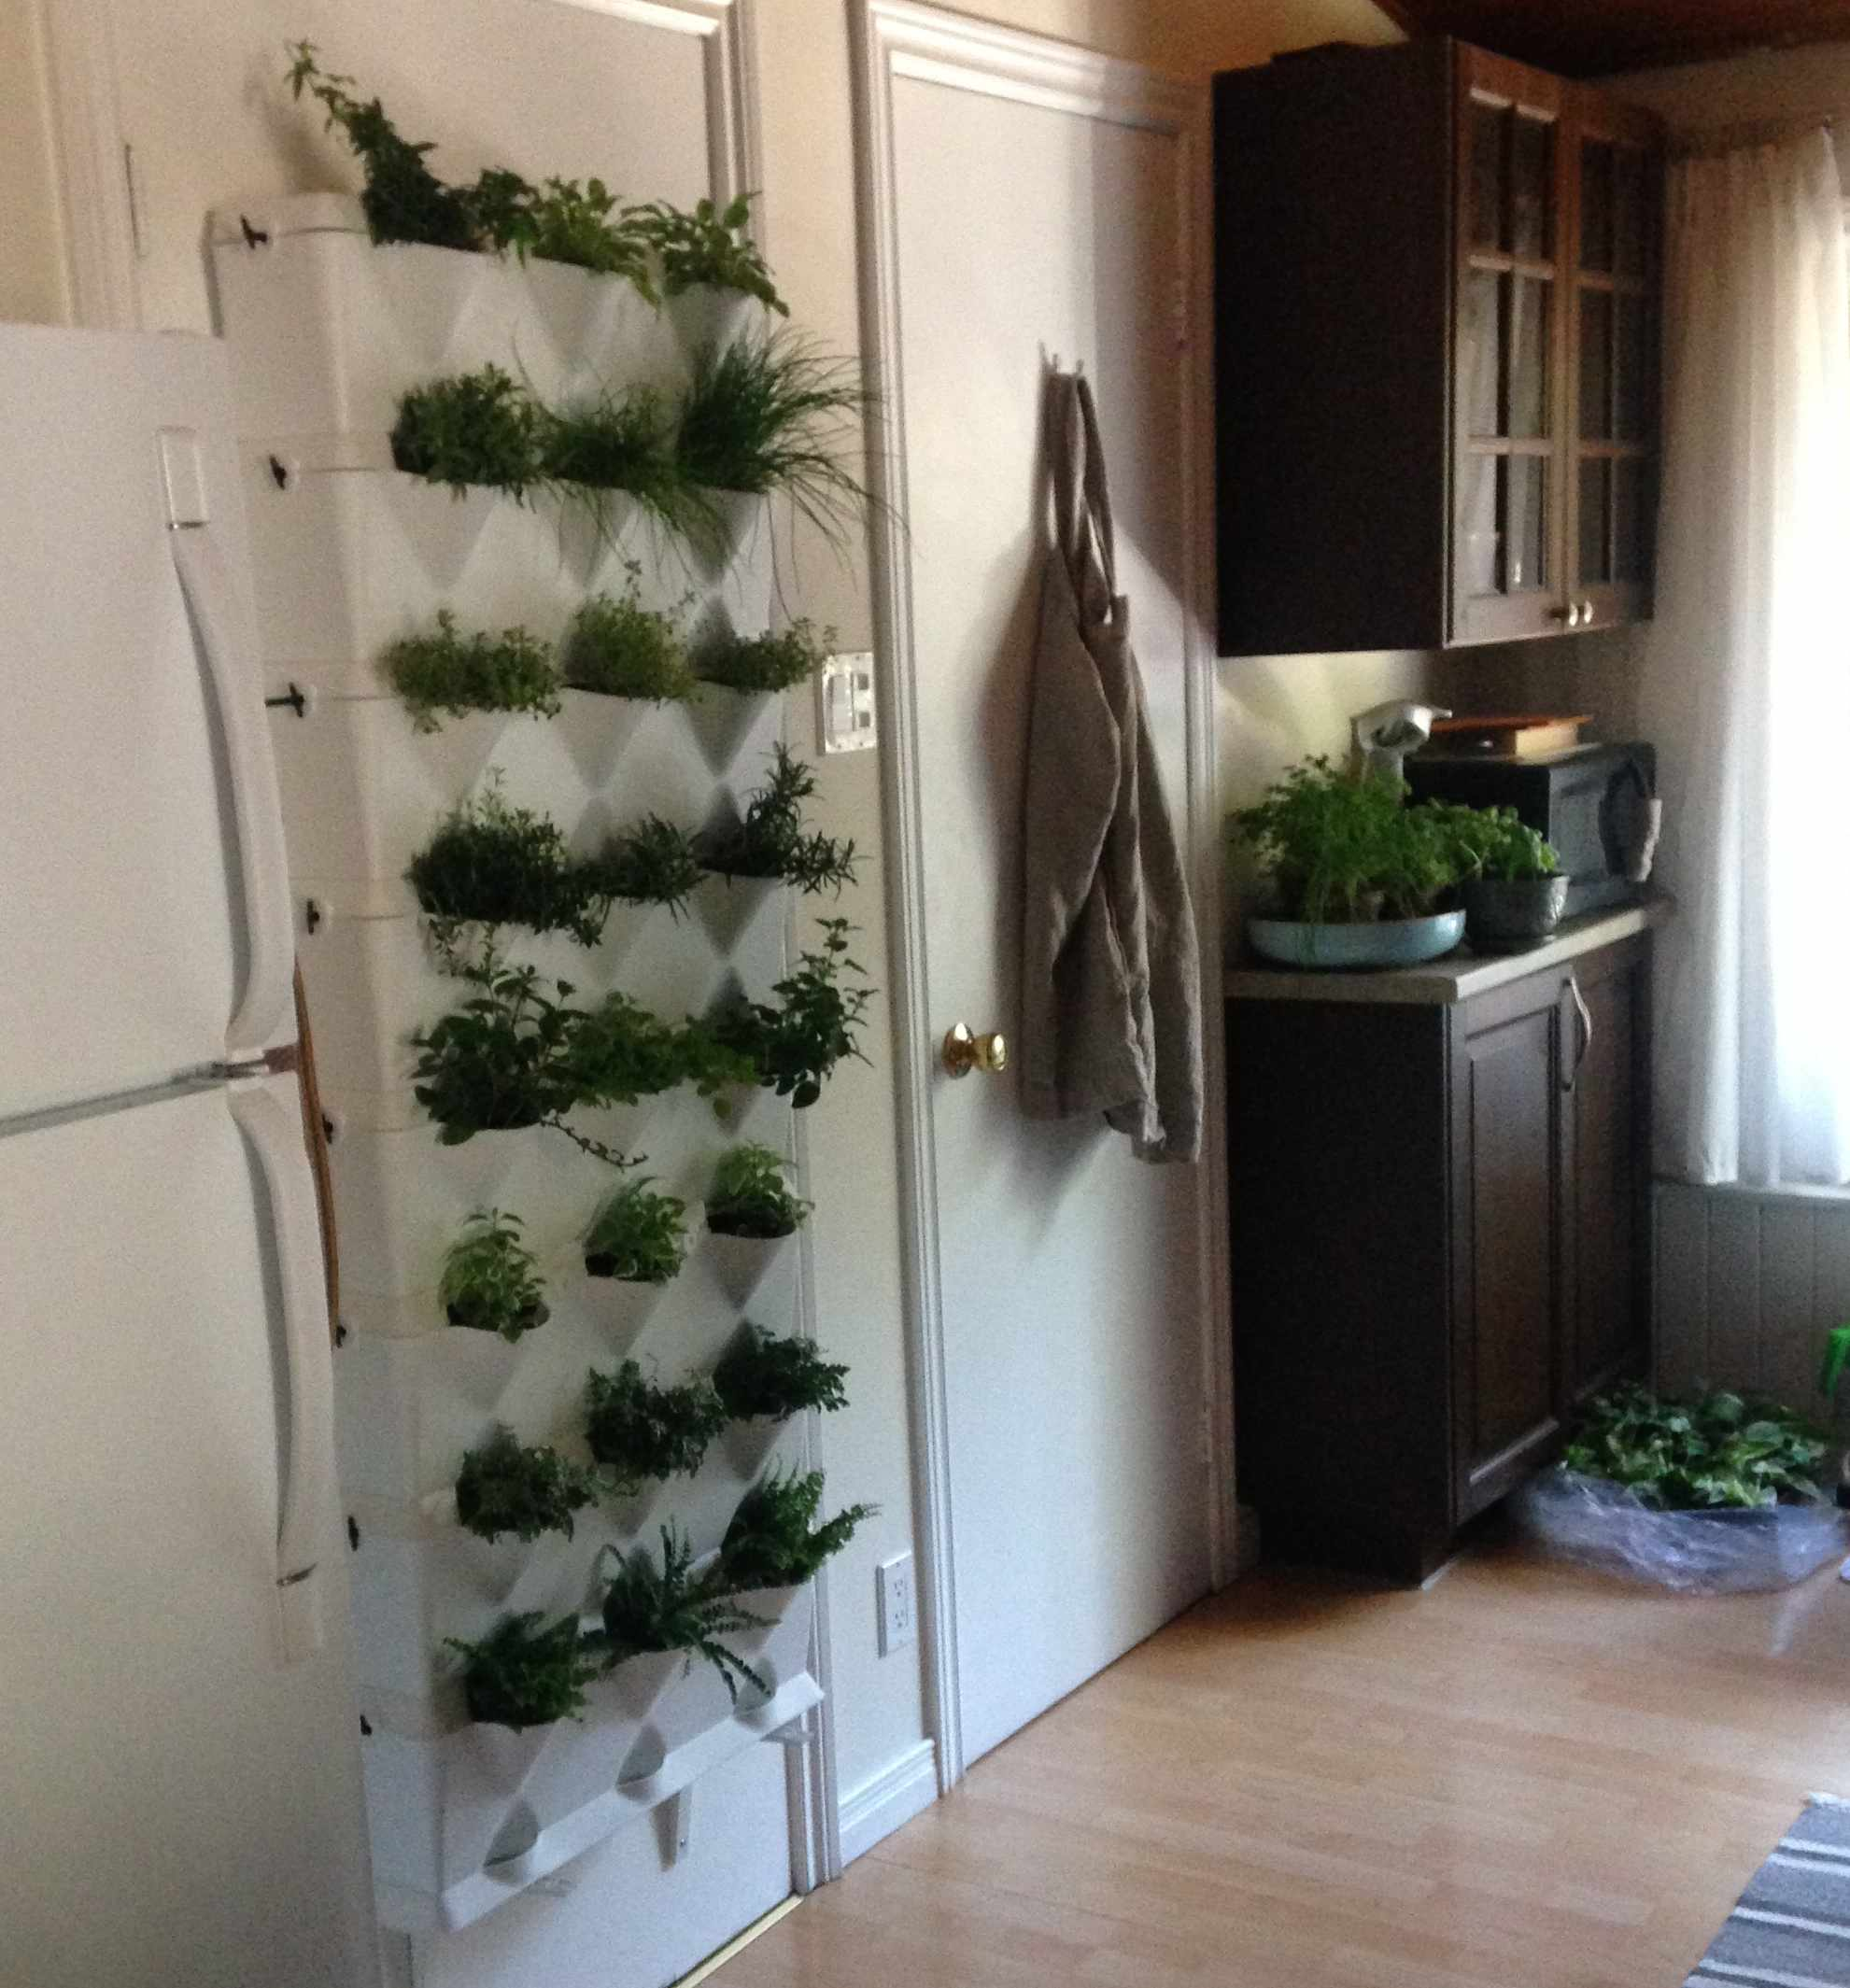 Vertical Kitchen Garden Minigarden In Action Kim Ms Vertical Garden Minigarden Us